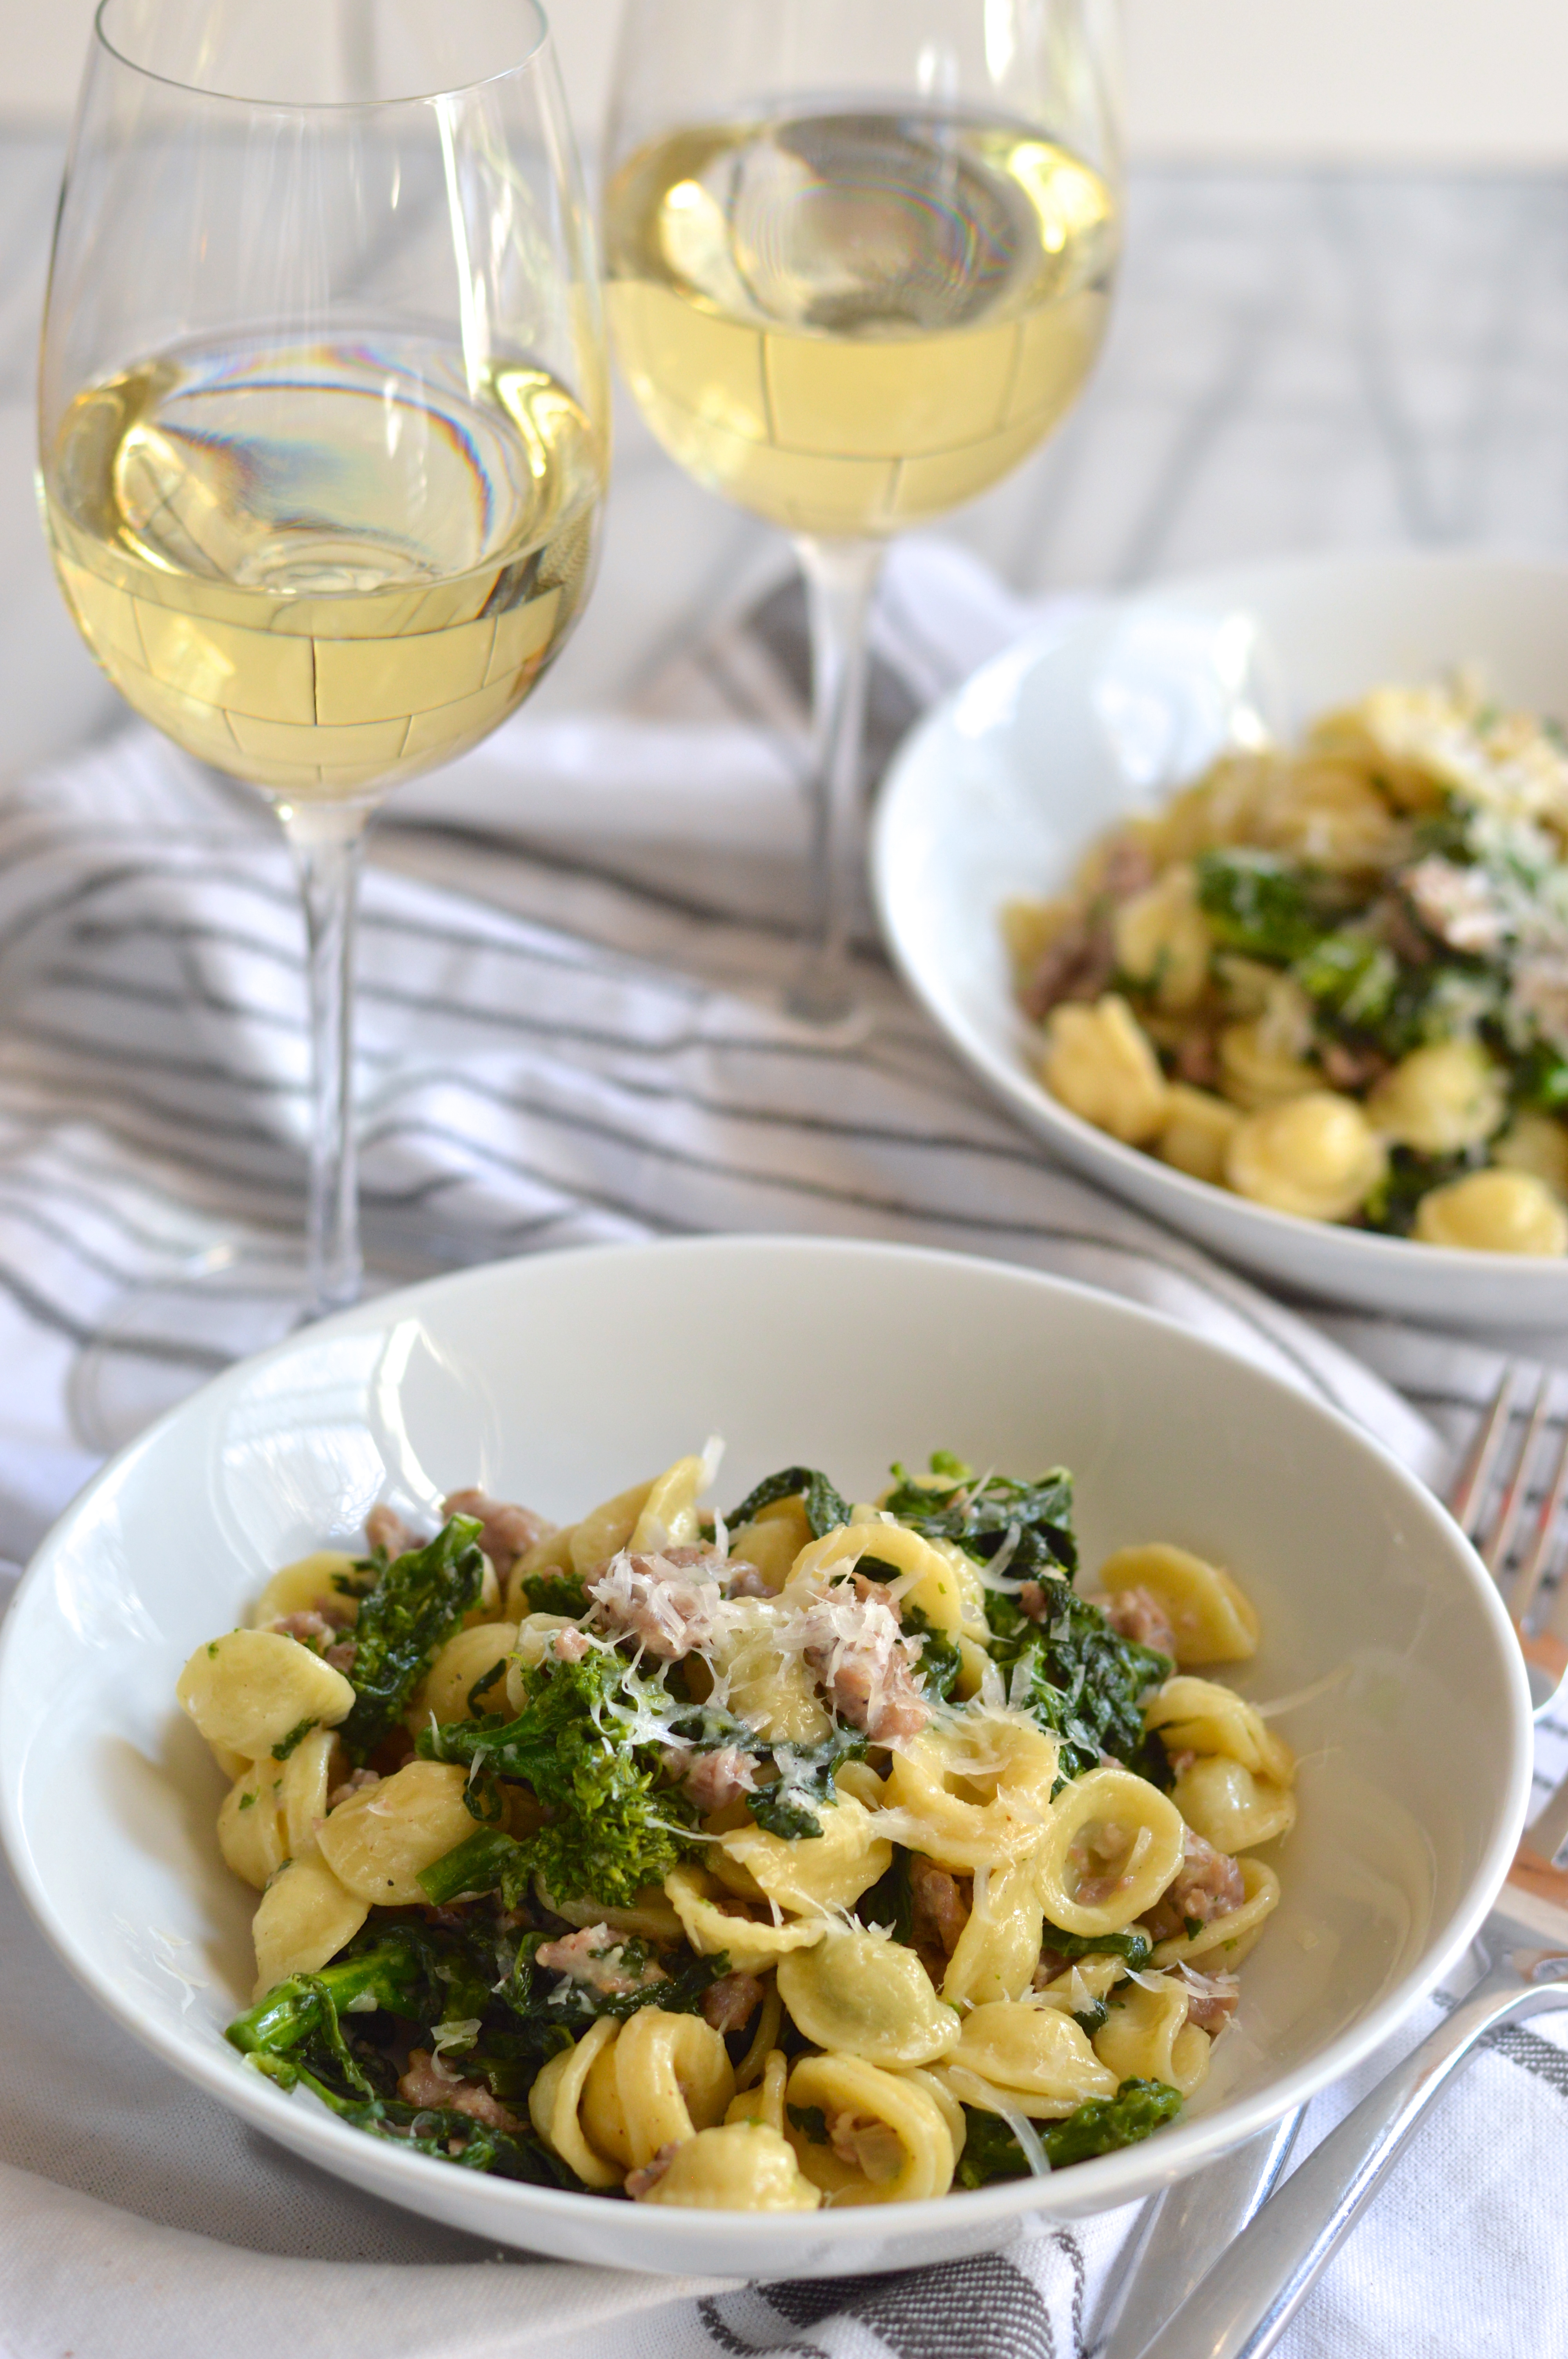 Orecchiette With Sausage And Broccoli Rabe Brooklyn Homemaker